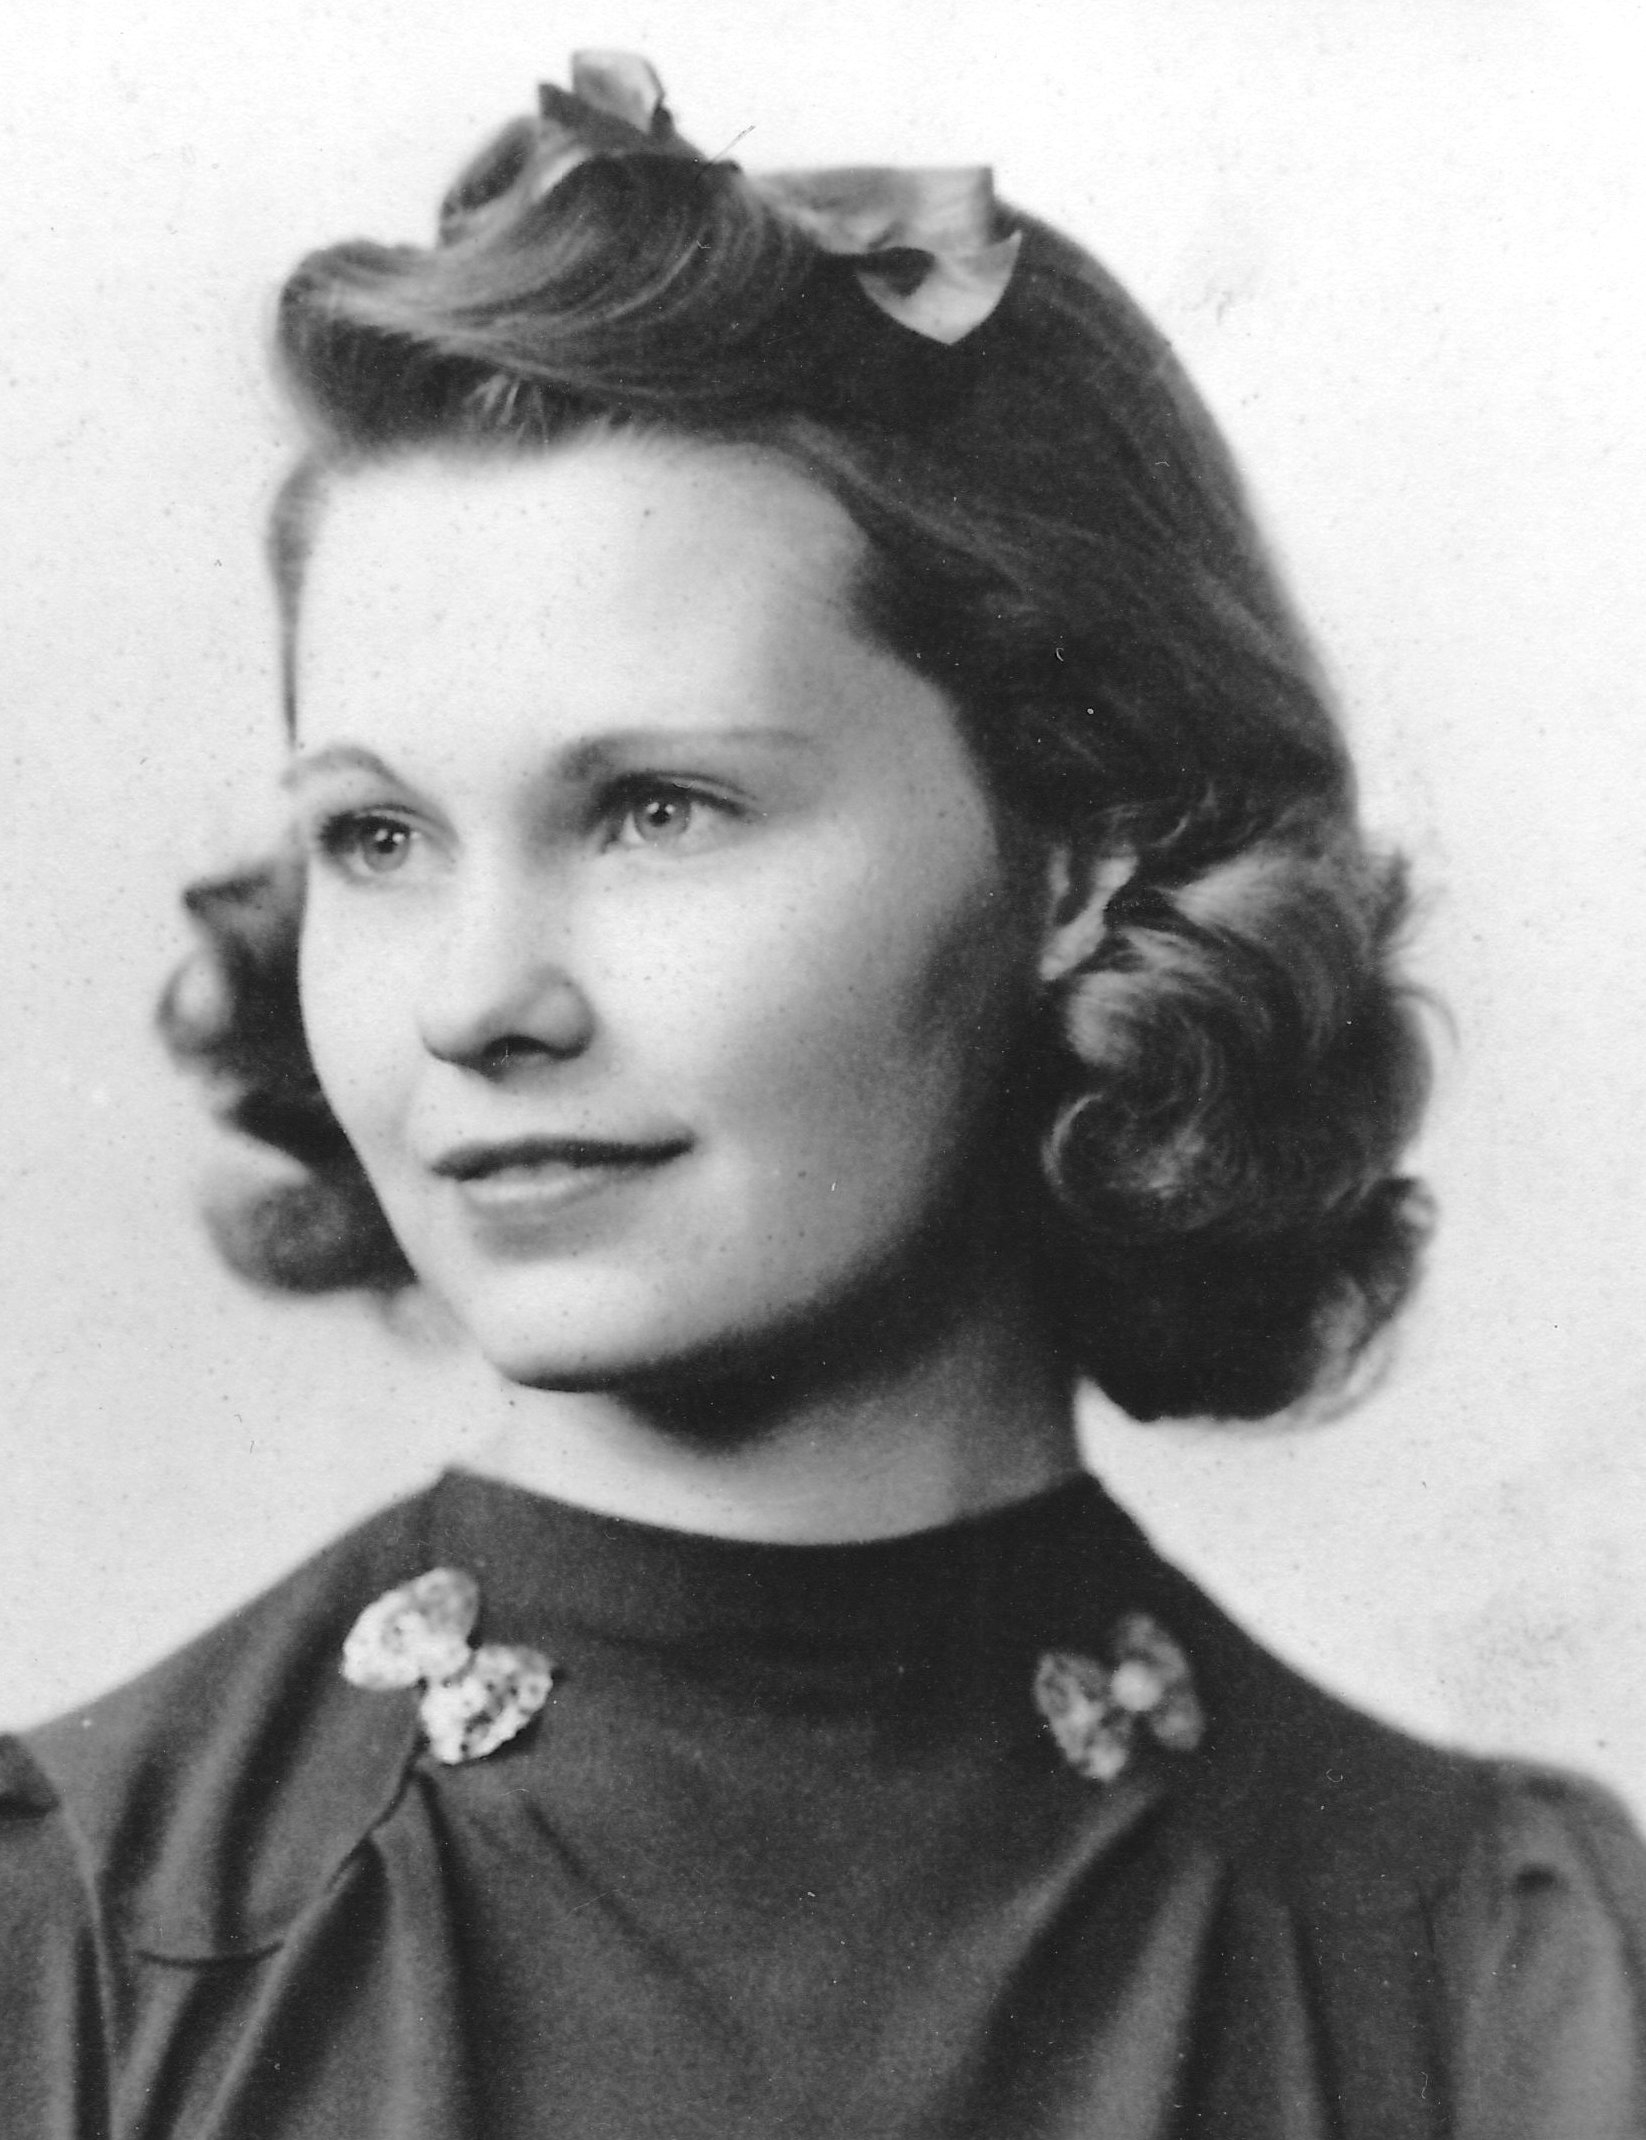 Wiler, Norma Jane Purcell